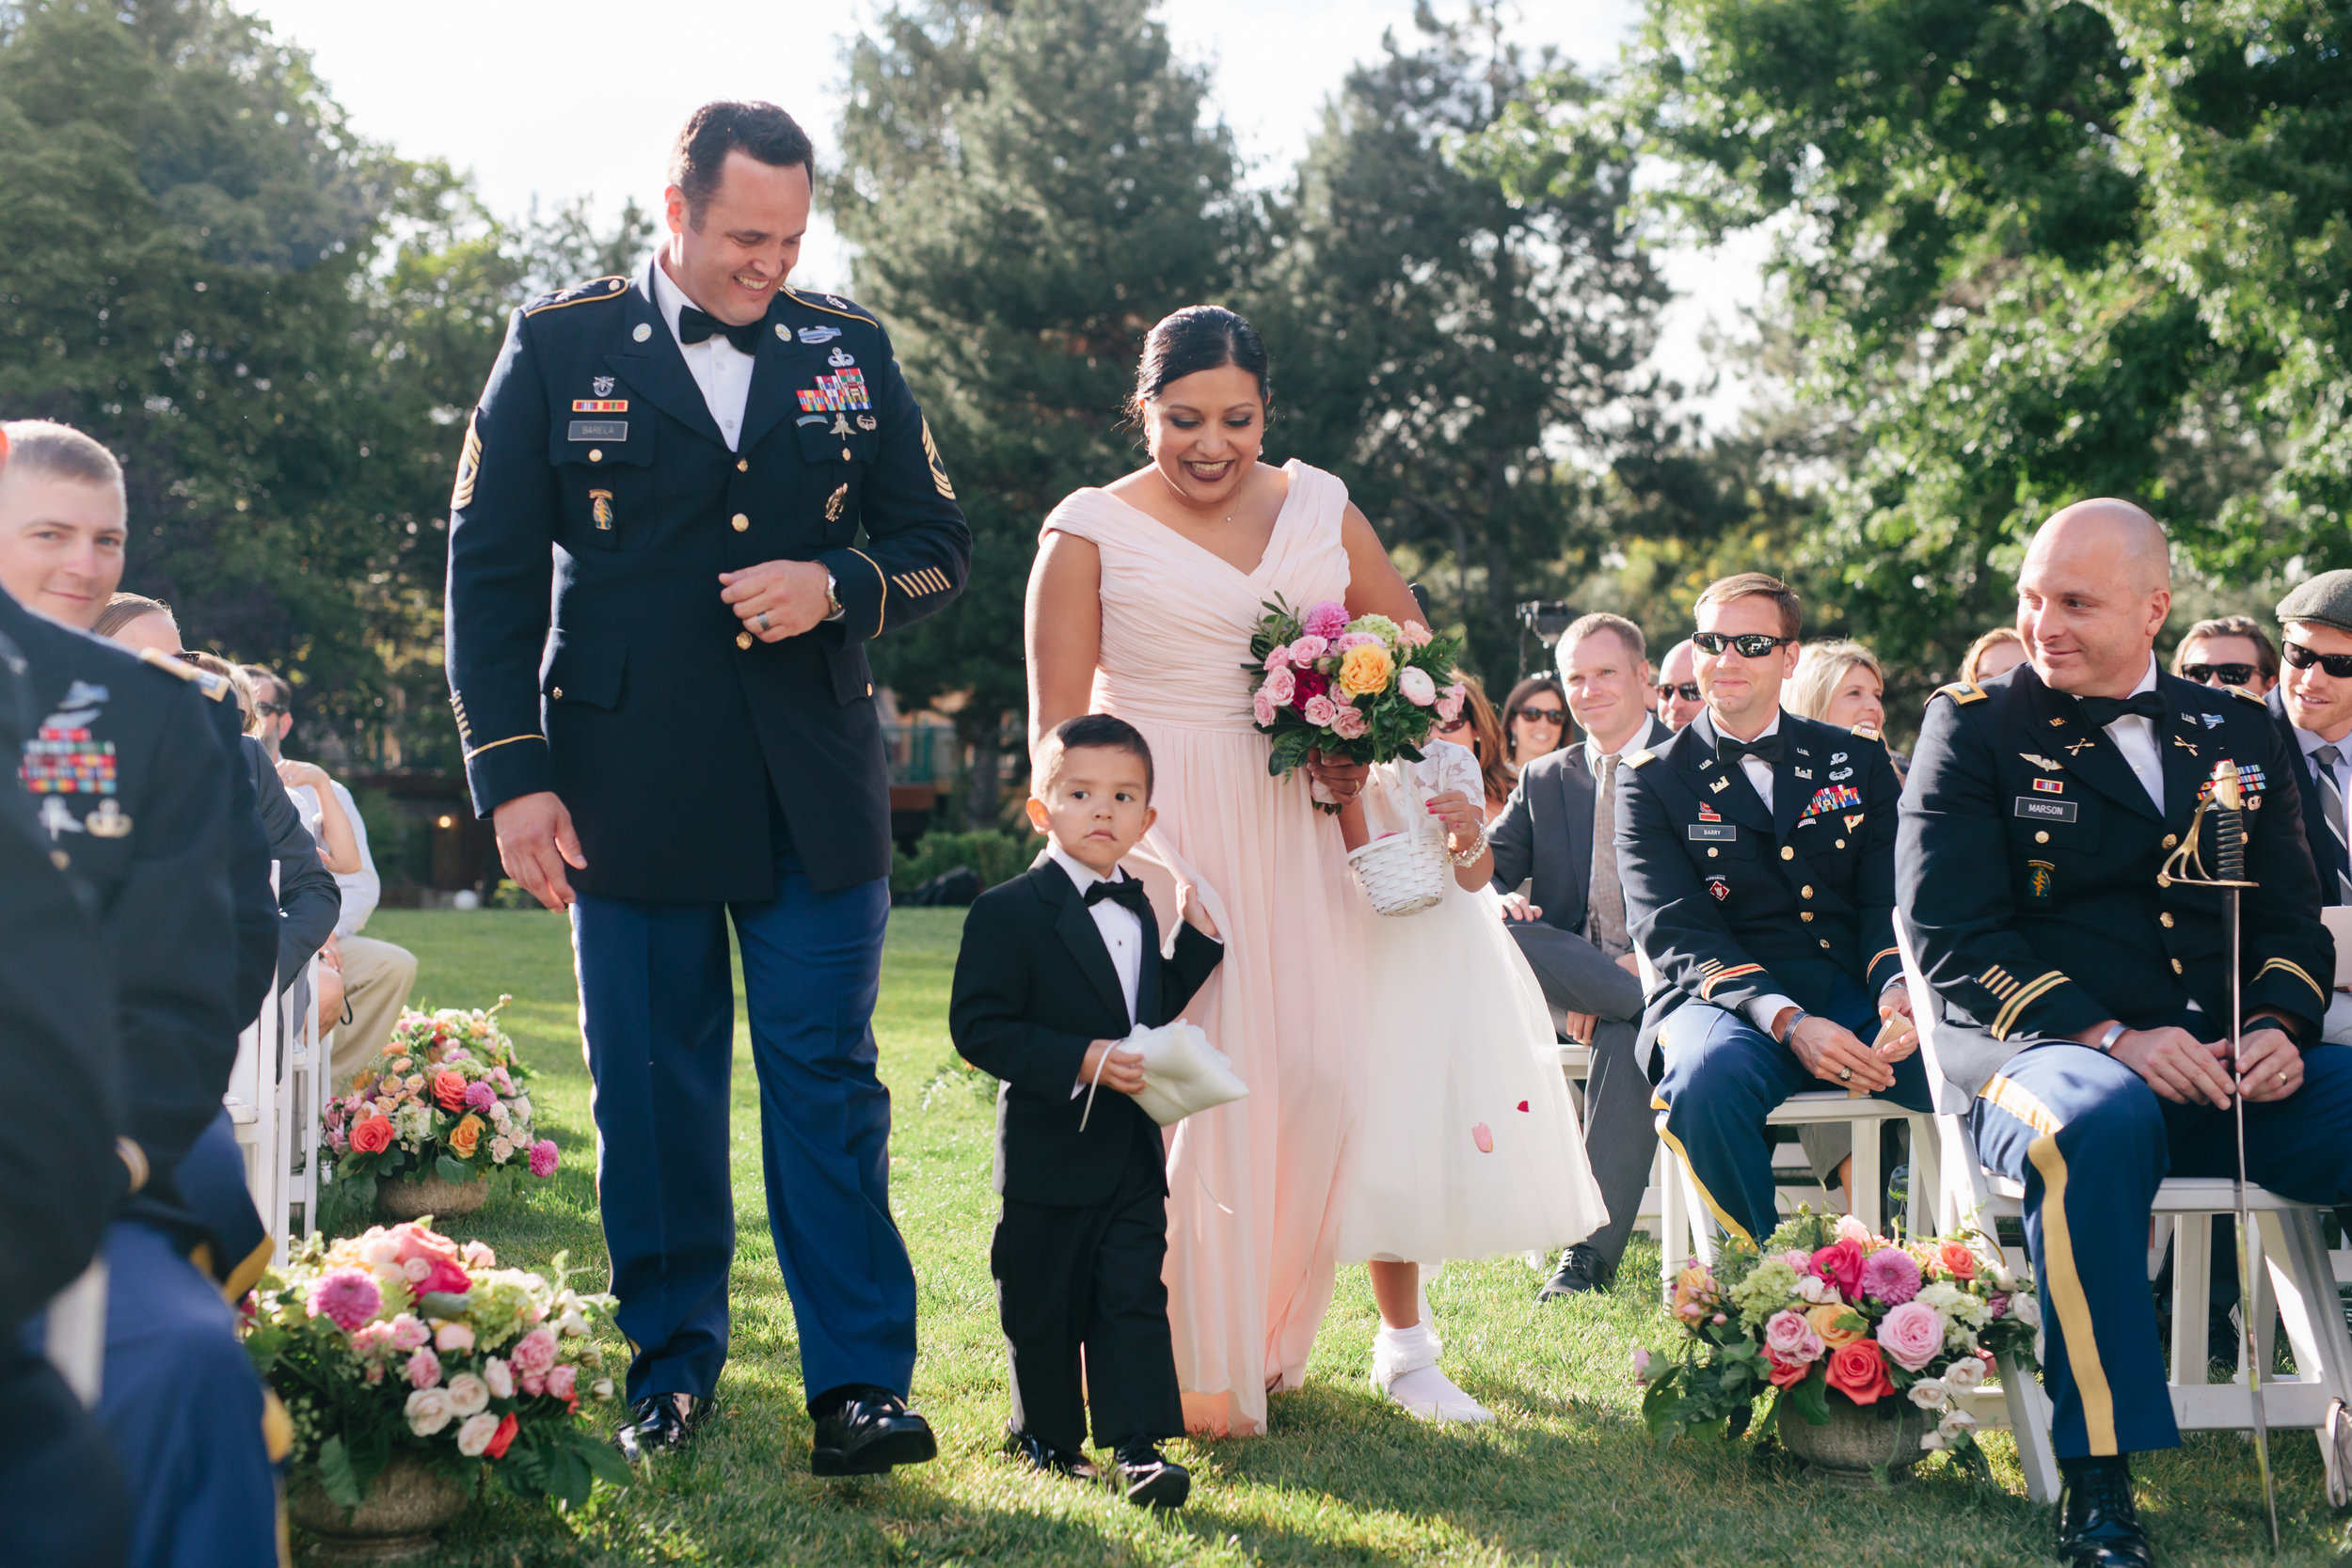 Expectations of the Best Man and Groomsmen   Bachelor Party   Ring Bearer   Michelle Leo Events   Utah Event Planner and Designer